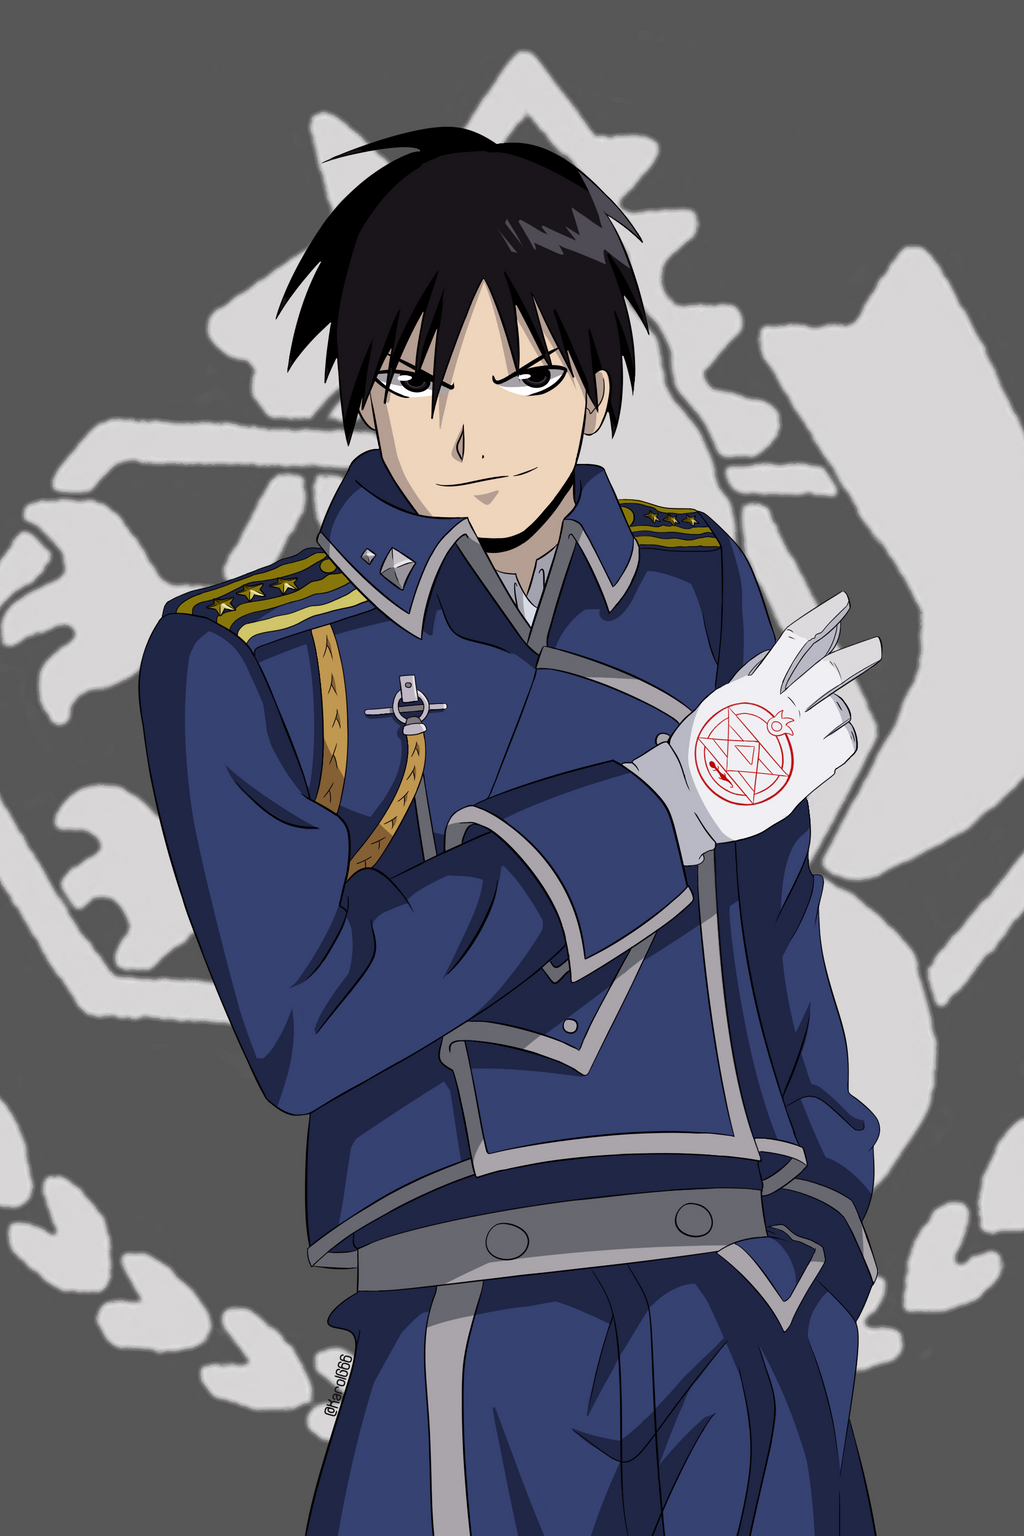 roy mustang (fullmetal alchemist brotherhood)karolg66 on